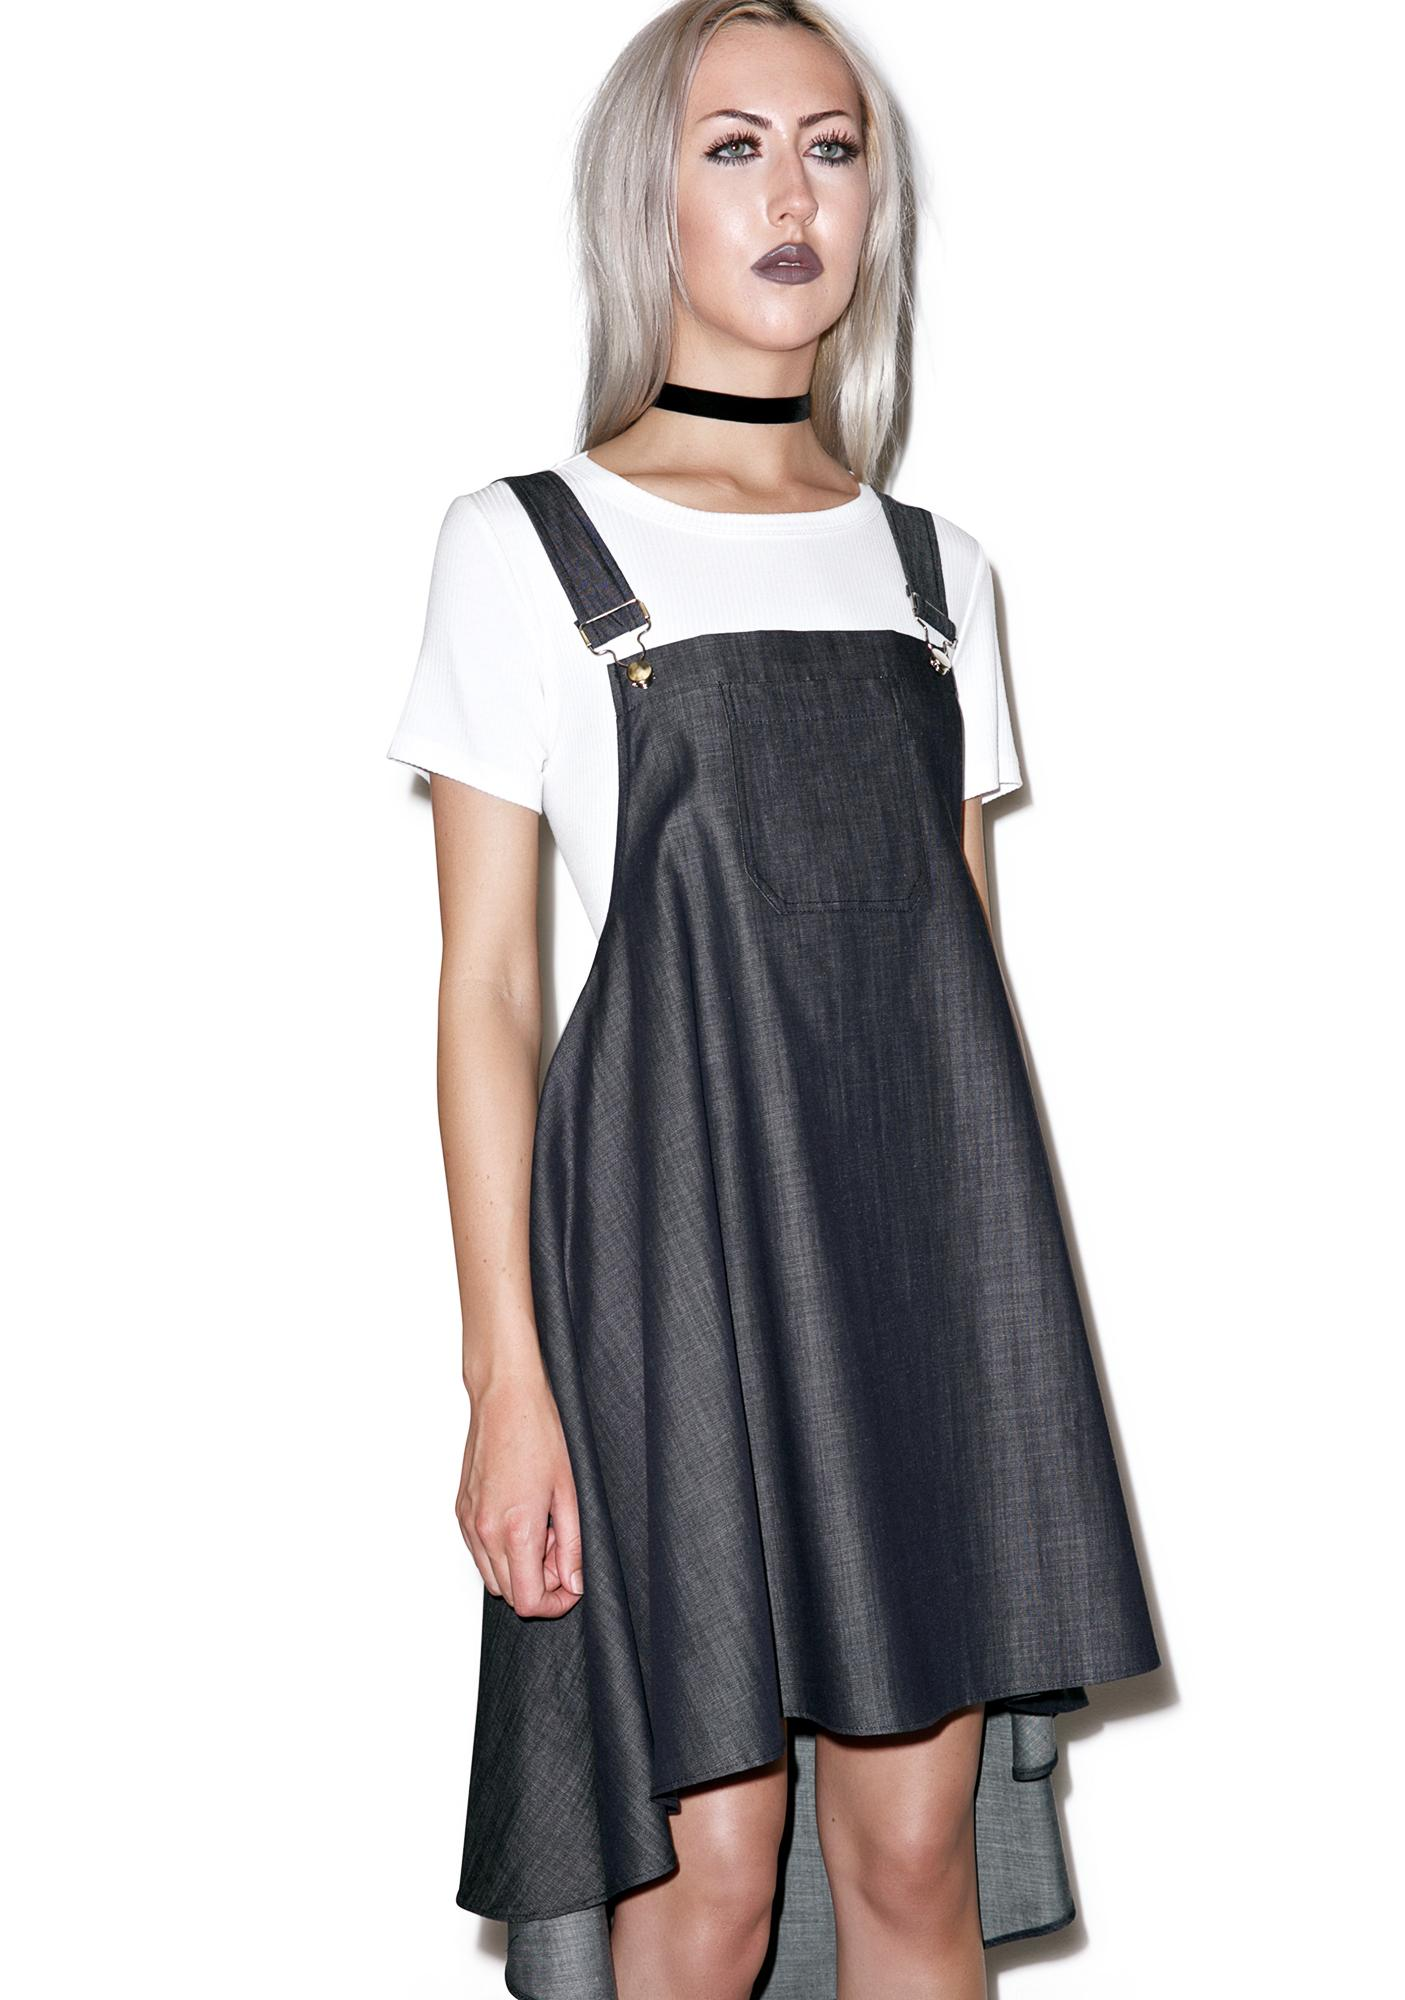 Selvage Strings Attached Overall Dress